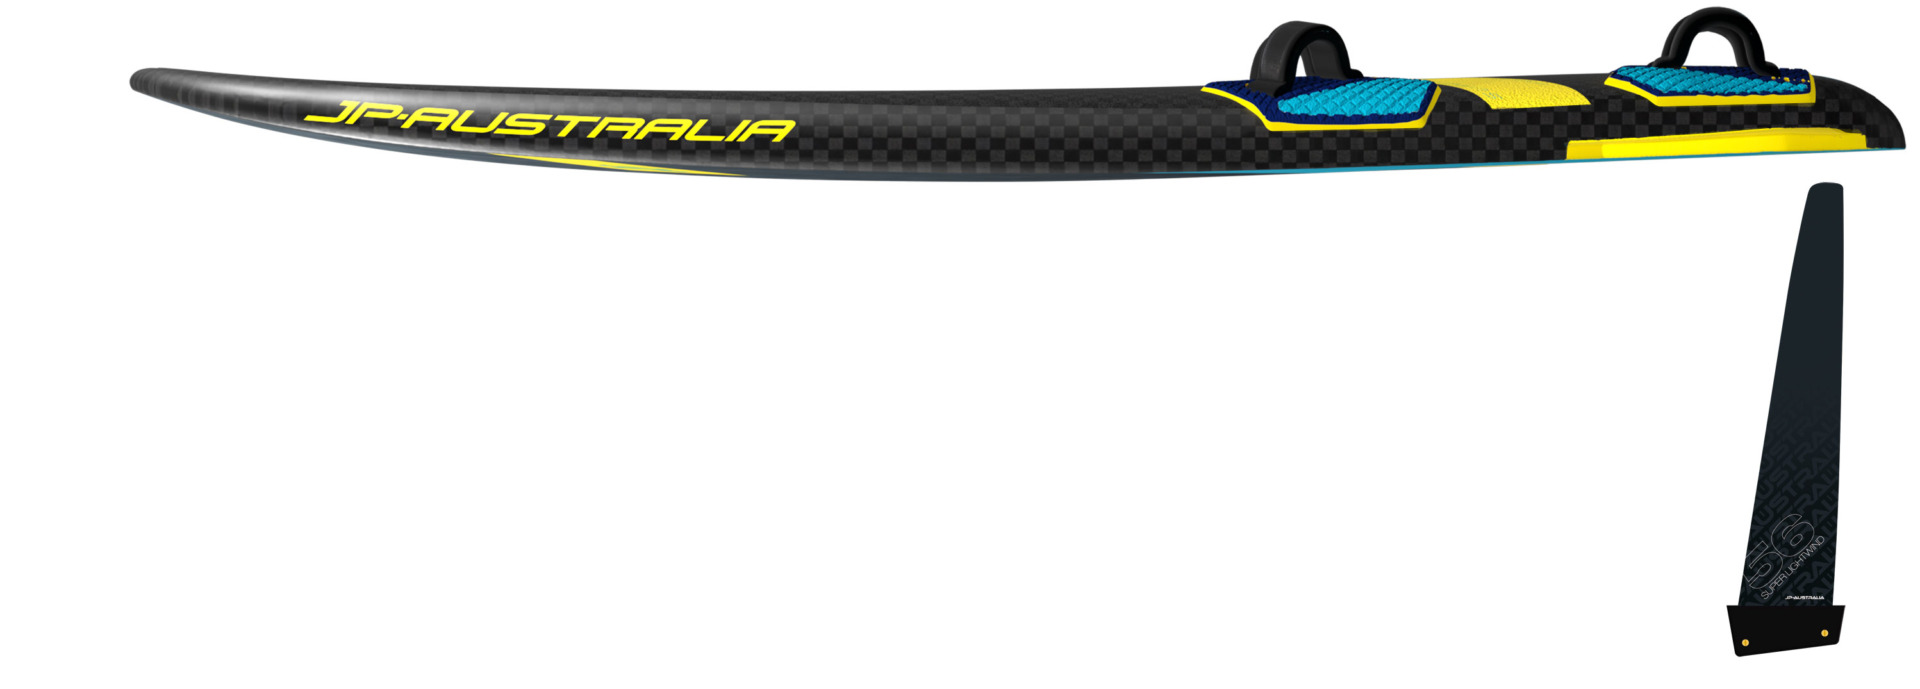 JP Australia SuperLightWind Gold 2021 rail